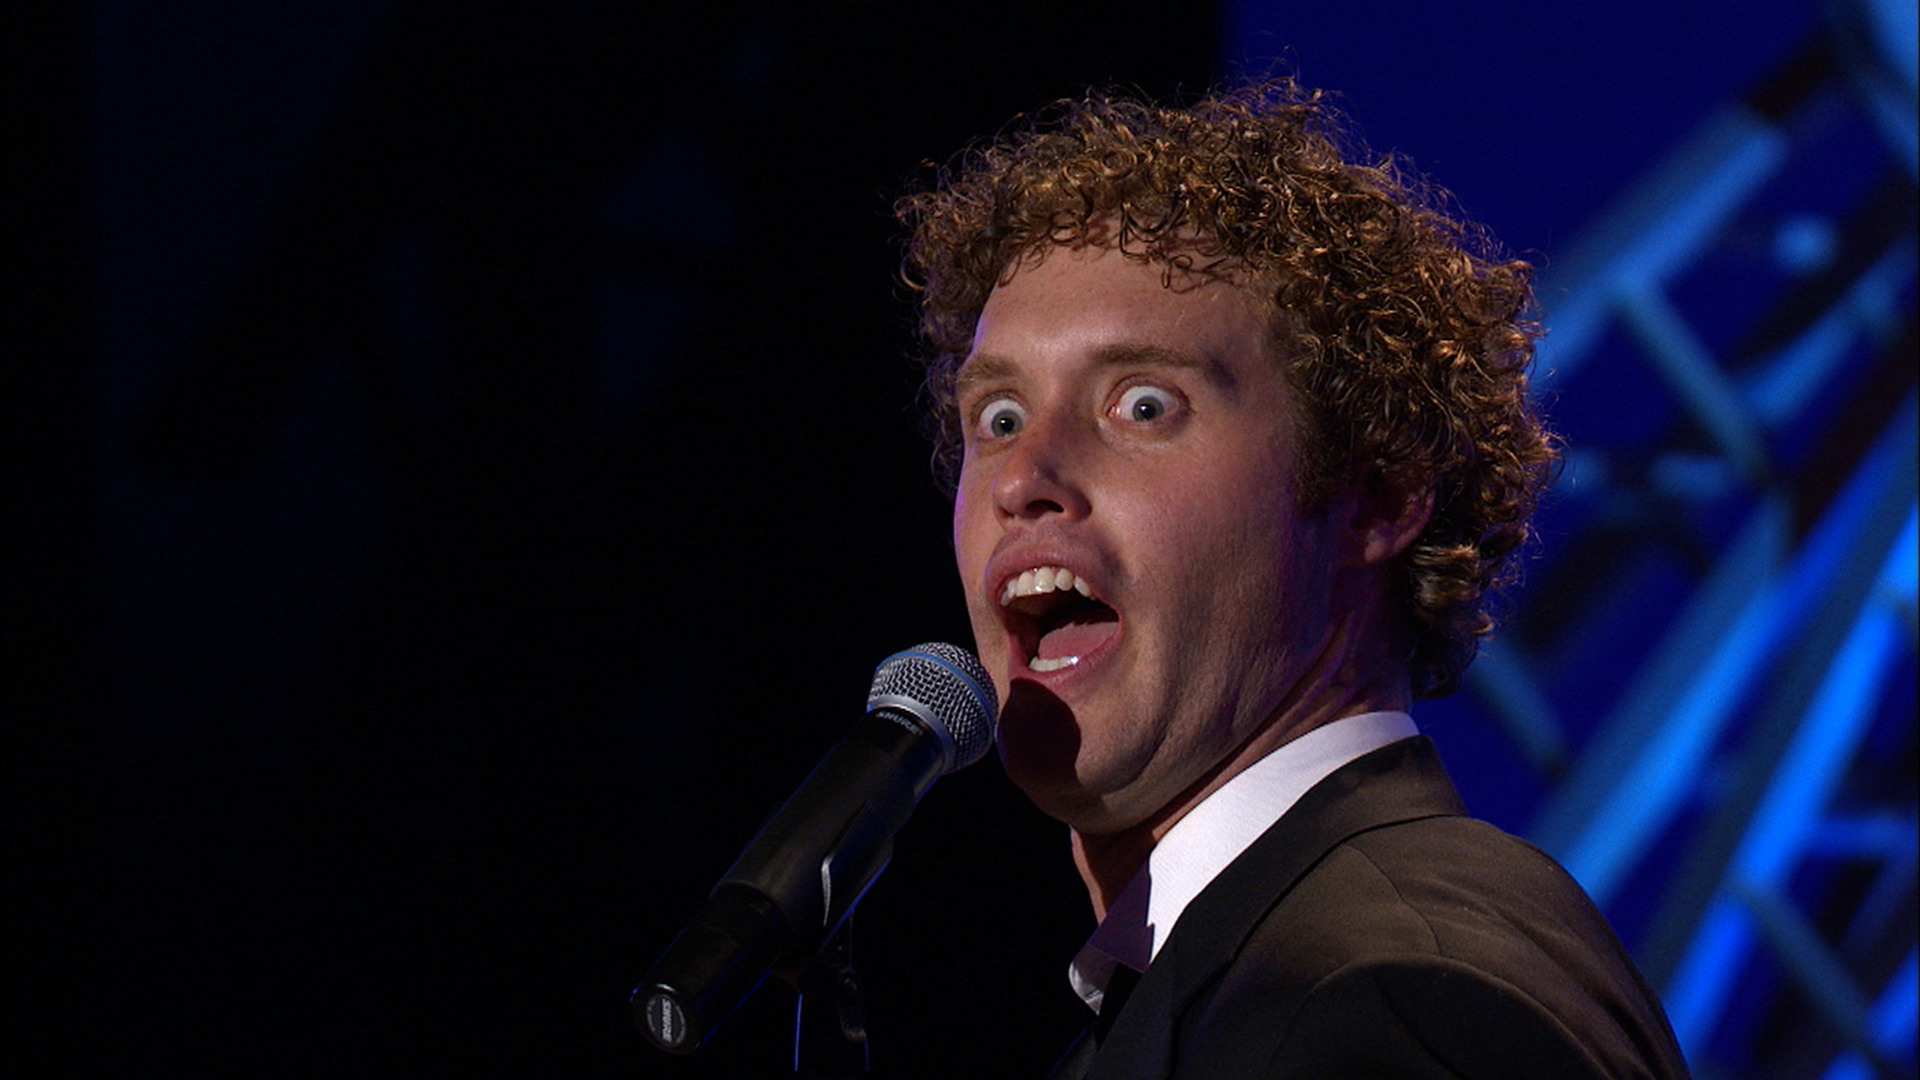 T.J. Miller - Notice the Arms